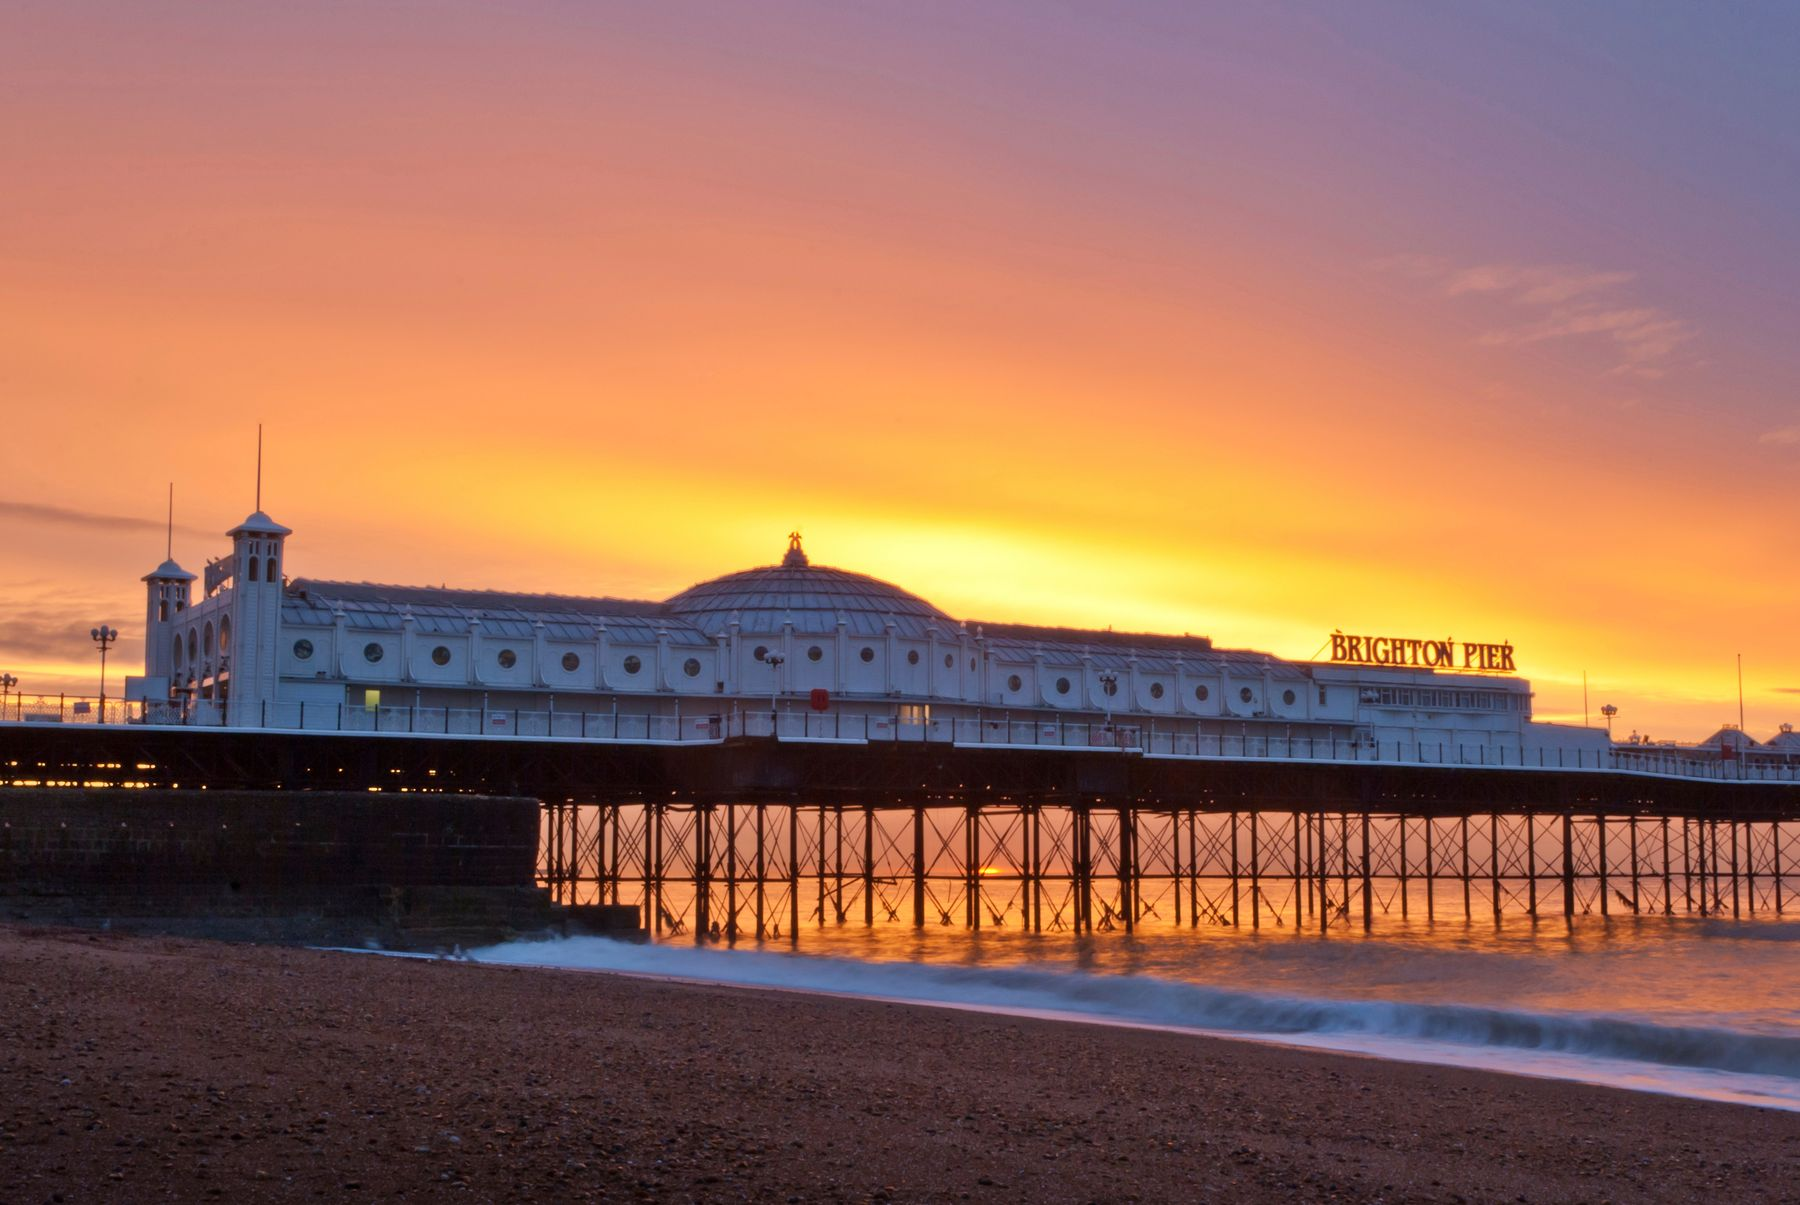 A view of Brighton pier from the beach at sunset